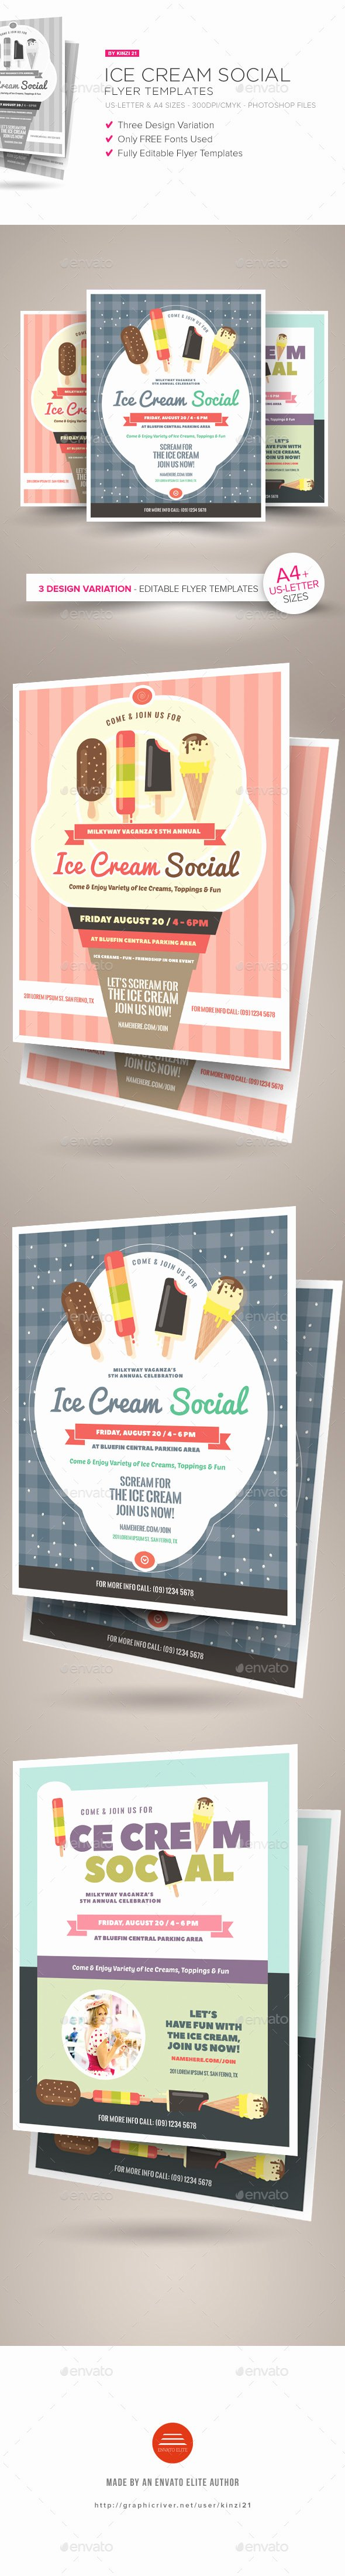 Free Ice Cream social Flyer Template Awesome Ice Cream social Flyer Templates by Kinzi21